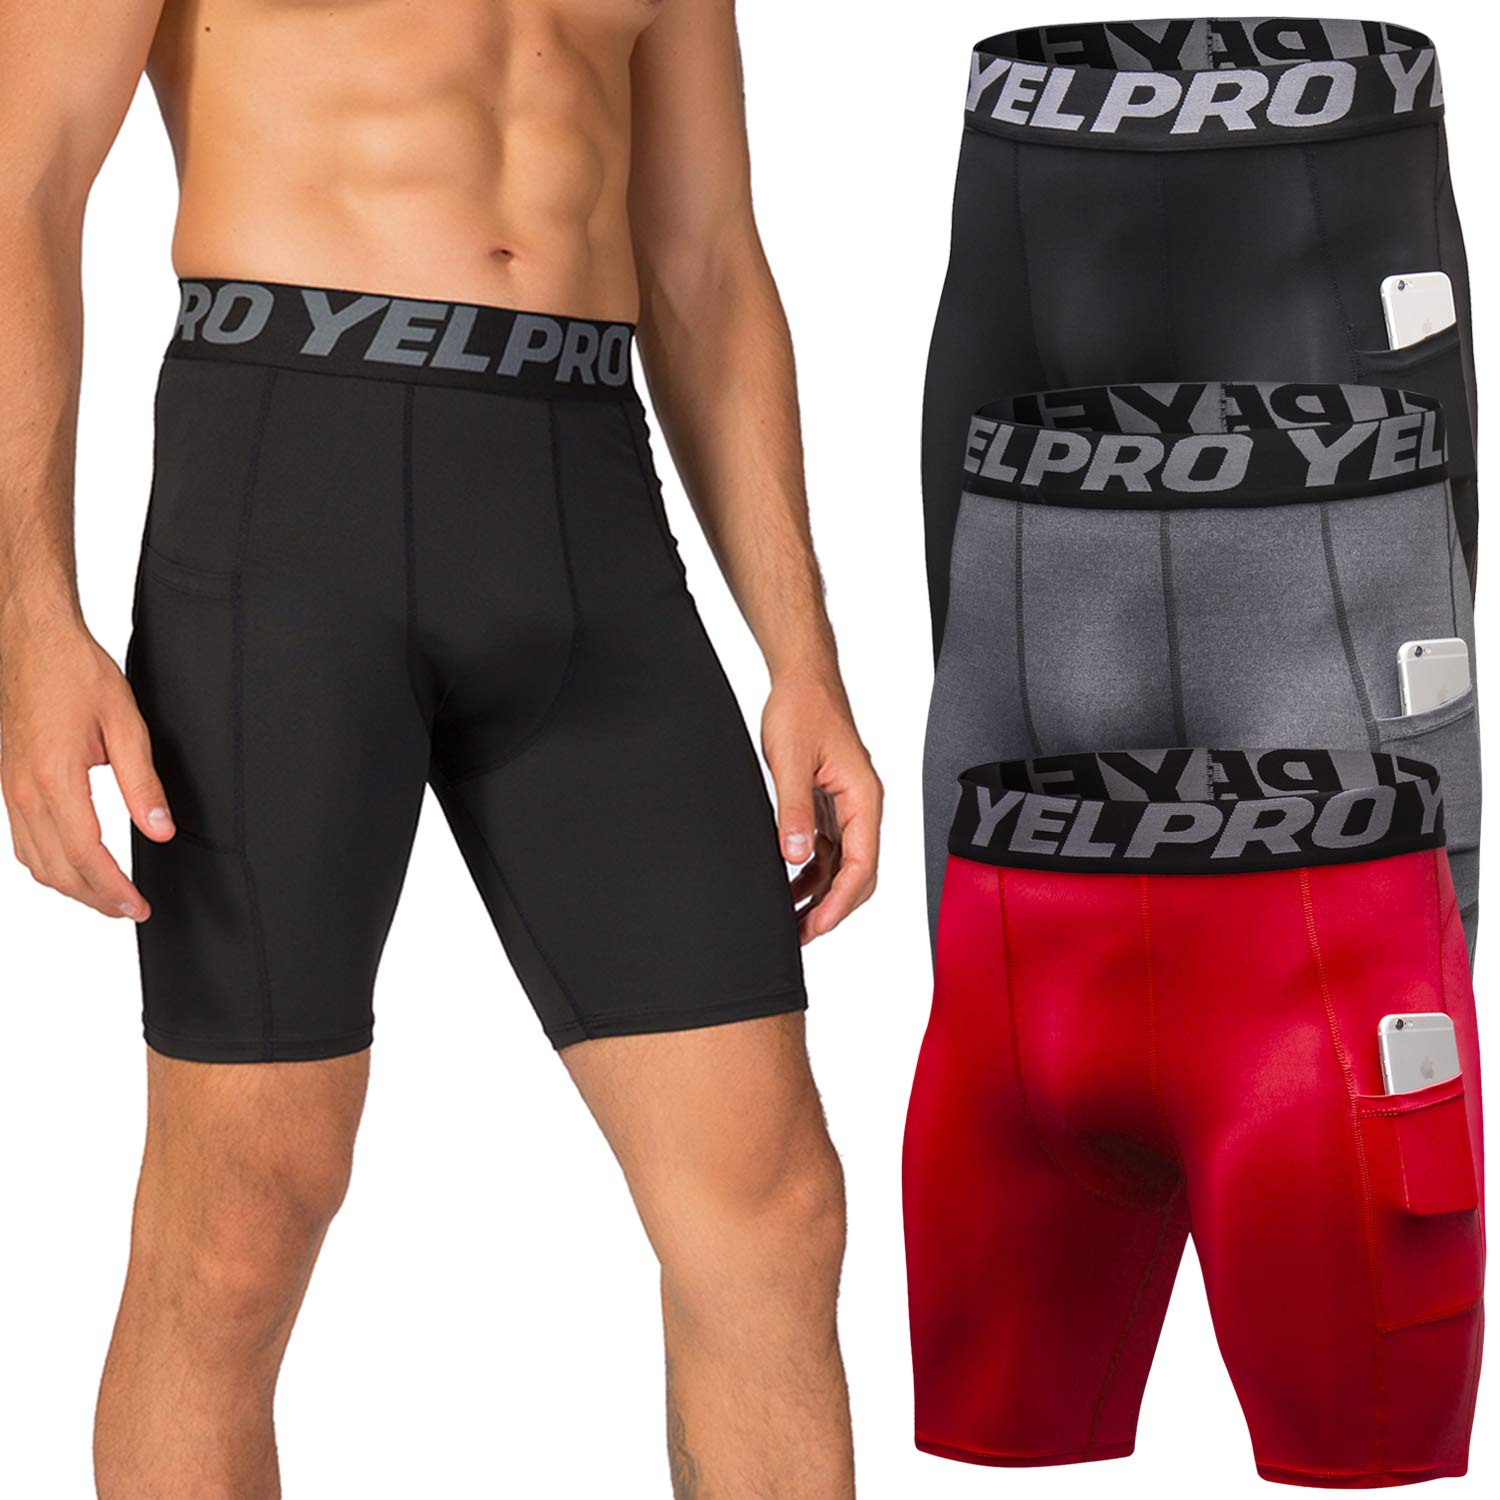 Lavento Men's Compression Shorts Sports Baselayer Cool Dry Tights (3 Pack-3814 Black/Gray/Red,2X-Large) by Lavento